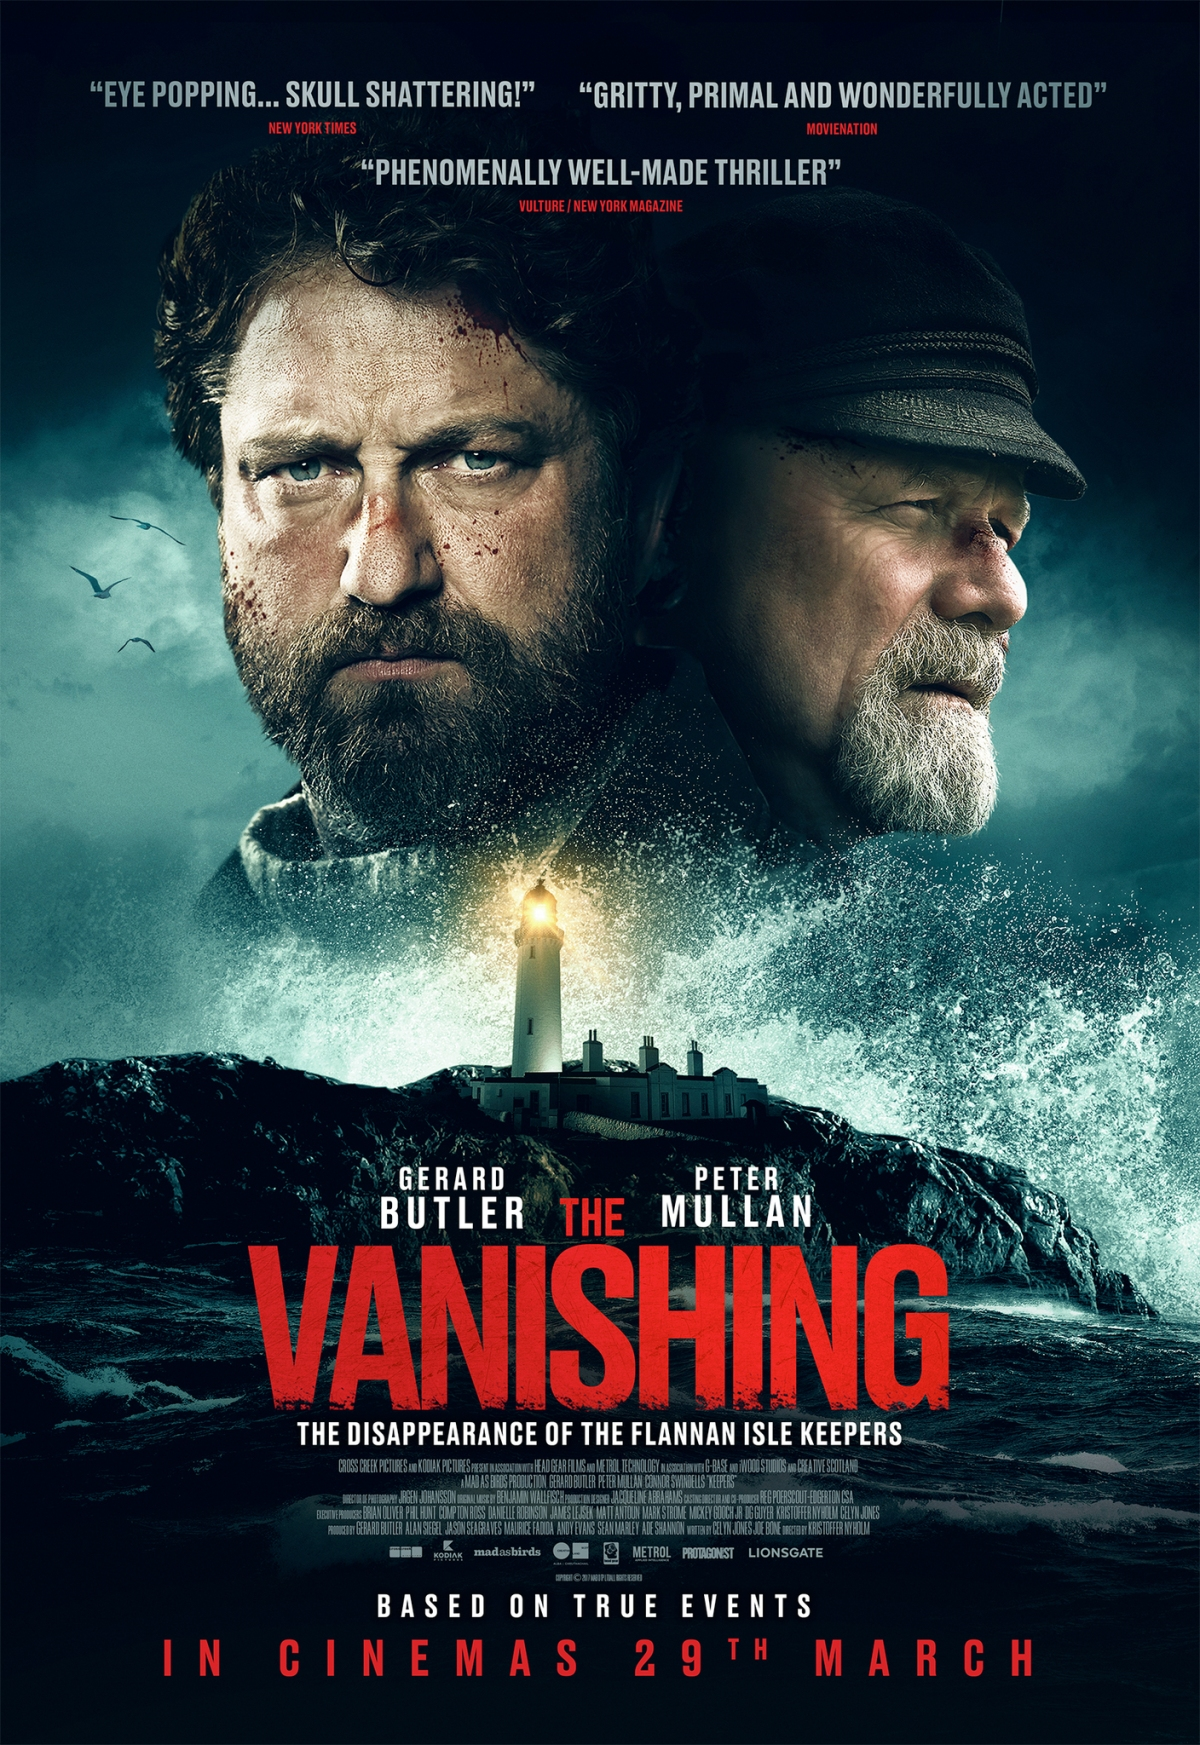 Film of the Day (06/12/19): The Vanishing